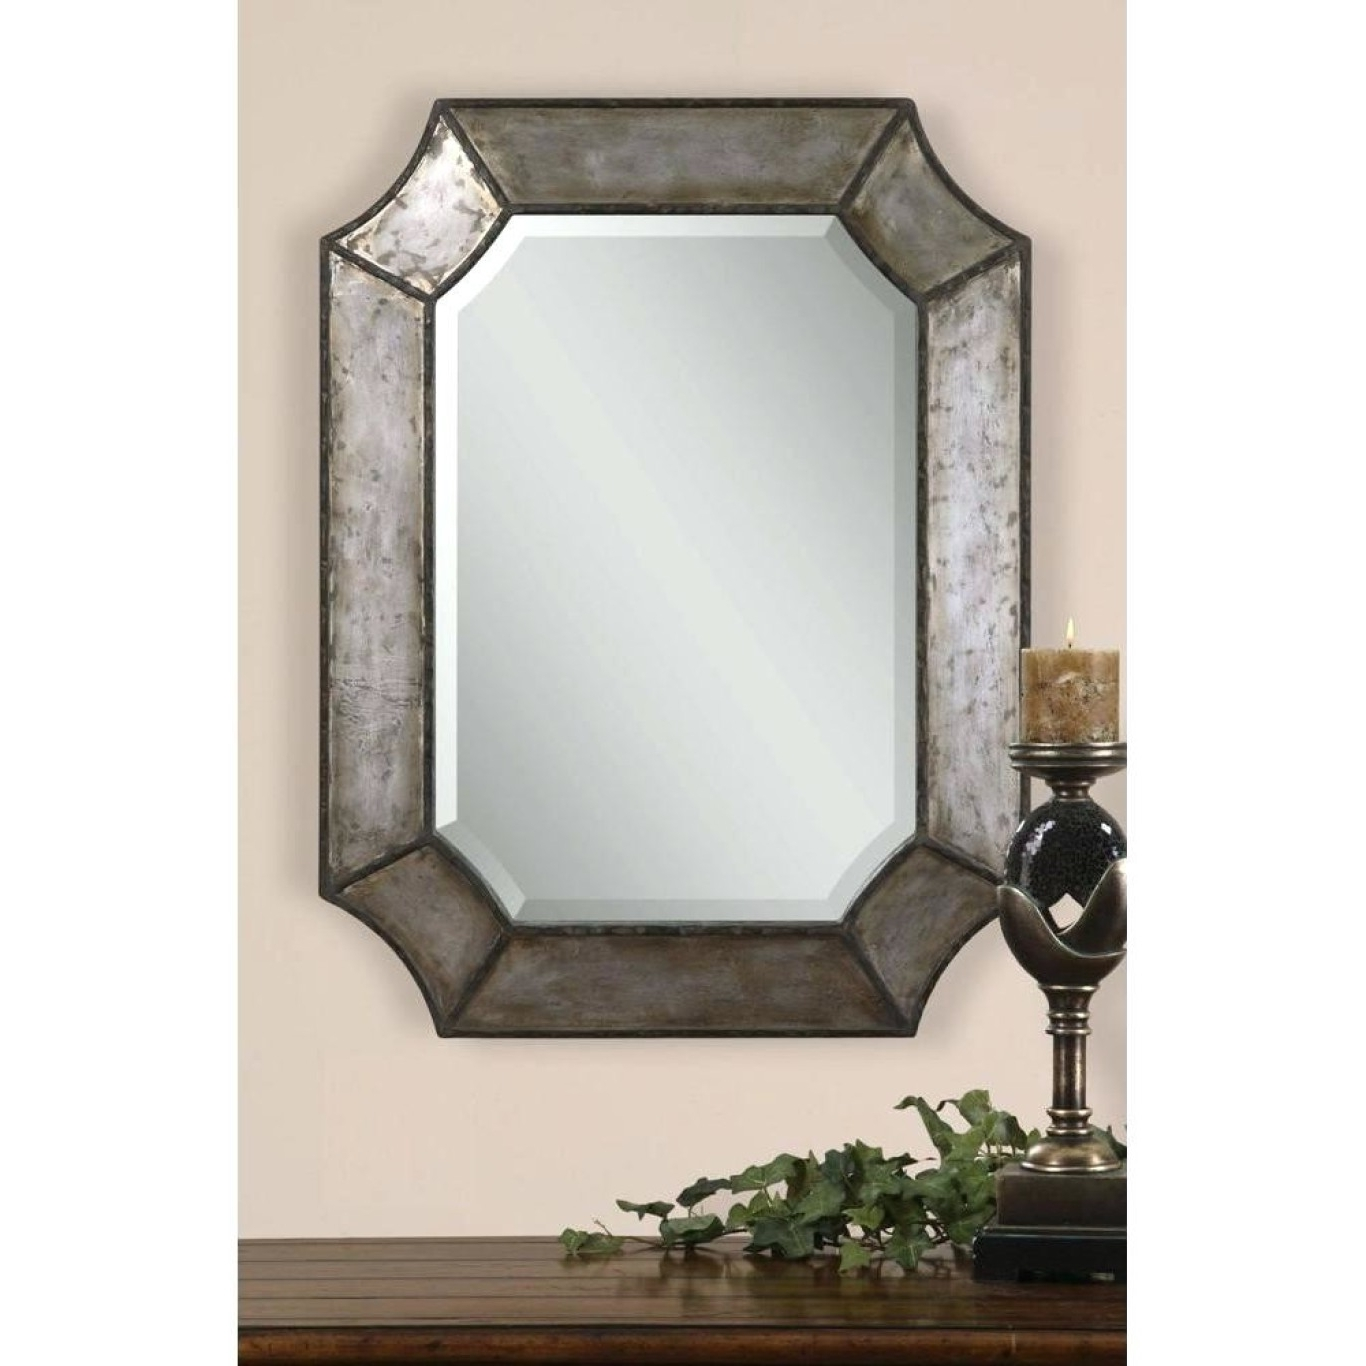 15 Best Ideas of Mirrored Frame Wall Art